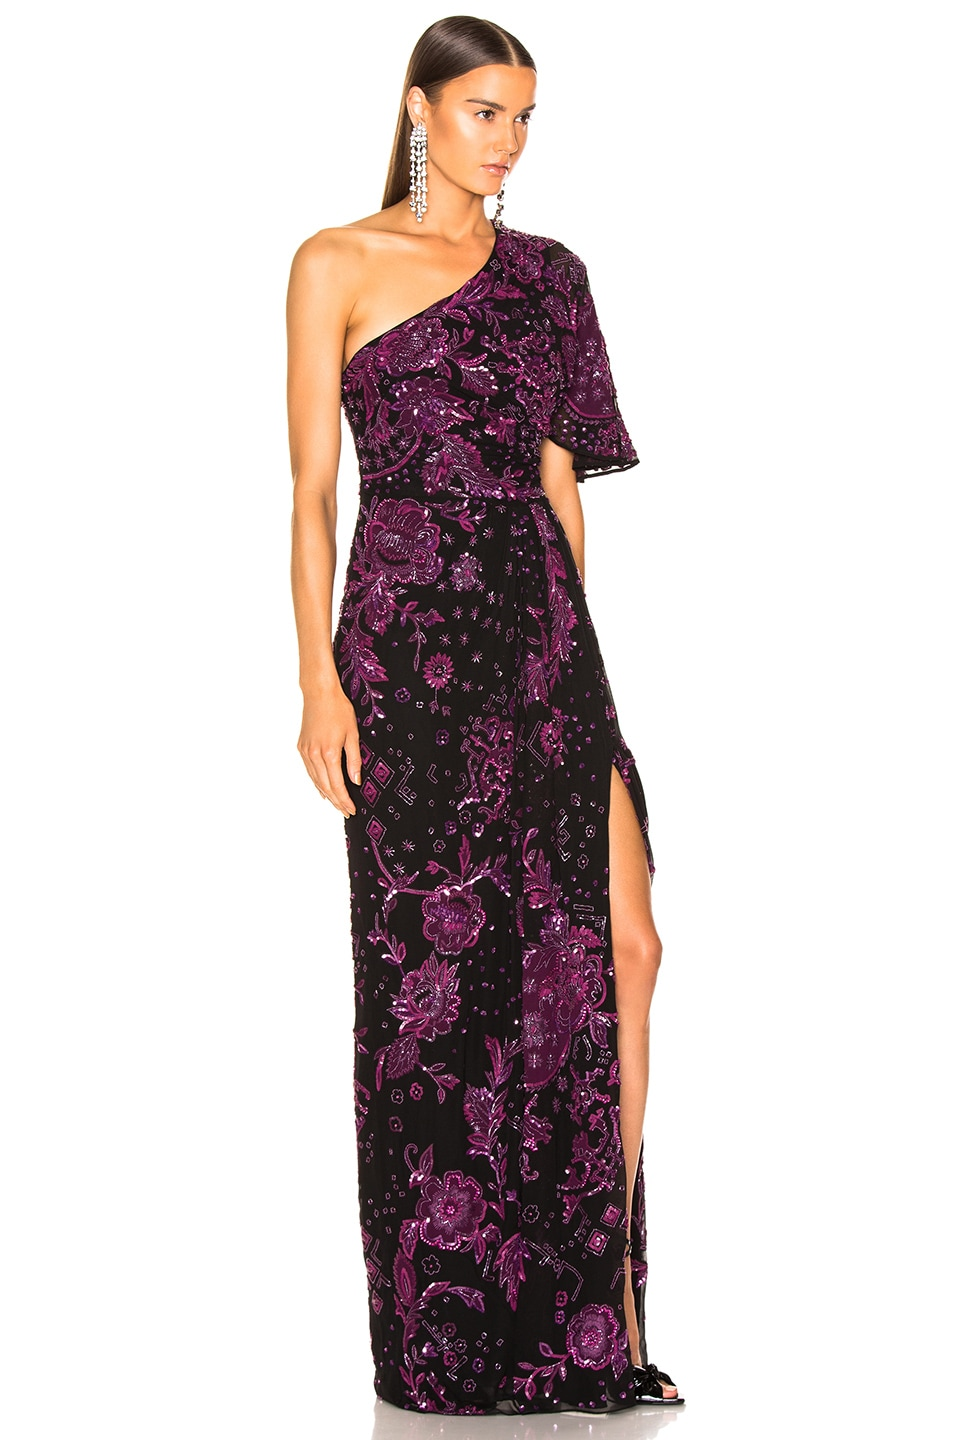 Image 2 of Zuhair Murad Patchwork Embroidery One Shoulder Gown in Dark Purple